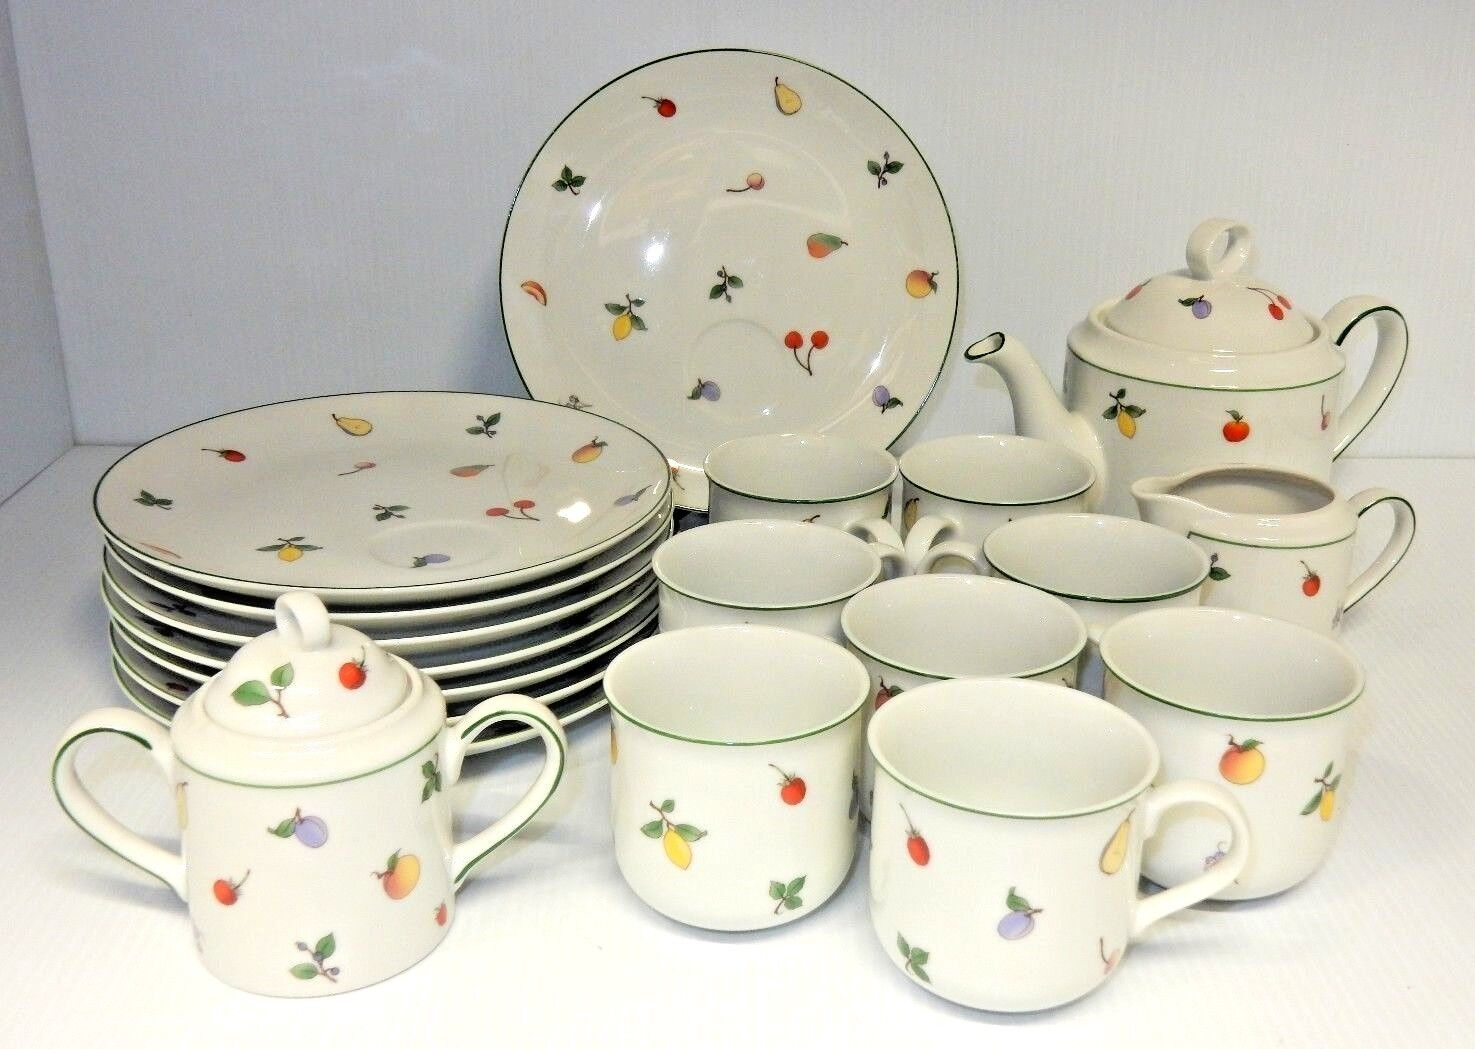 VINTAGE 19 PIECE SHAFFORD COFFEE AND TEA SET INCLUDES CUPS, SAUCERS AND MORE